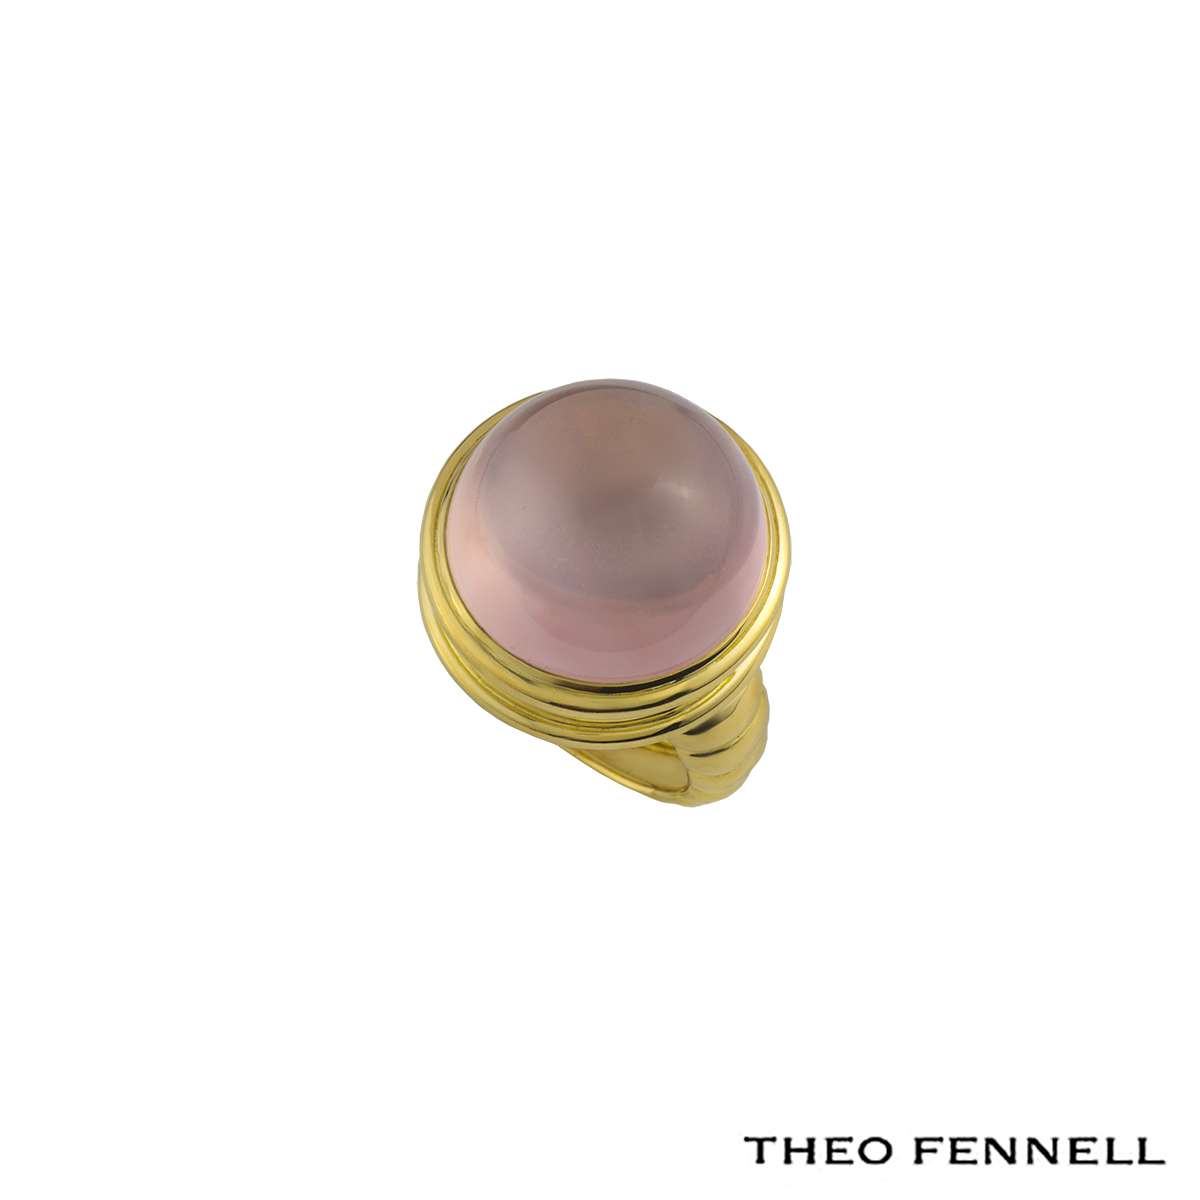 Theo Fennell 18k Yellow Gold Moonstone Ring.